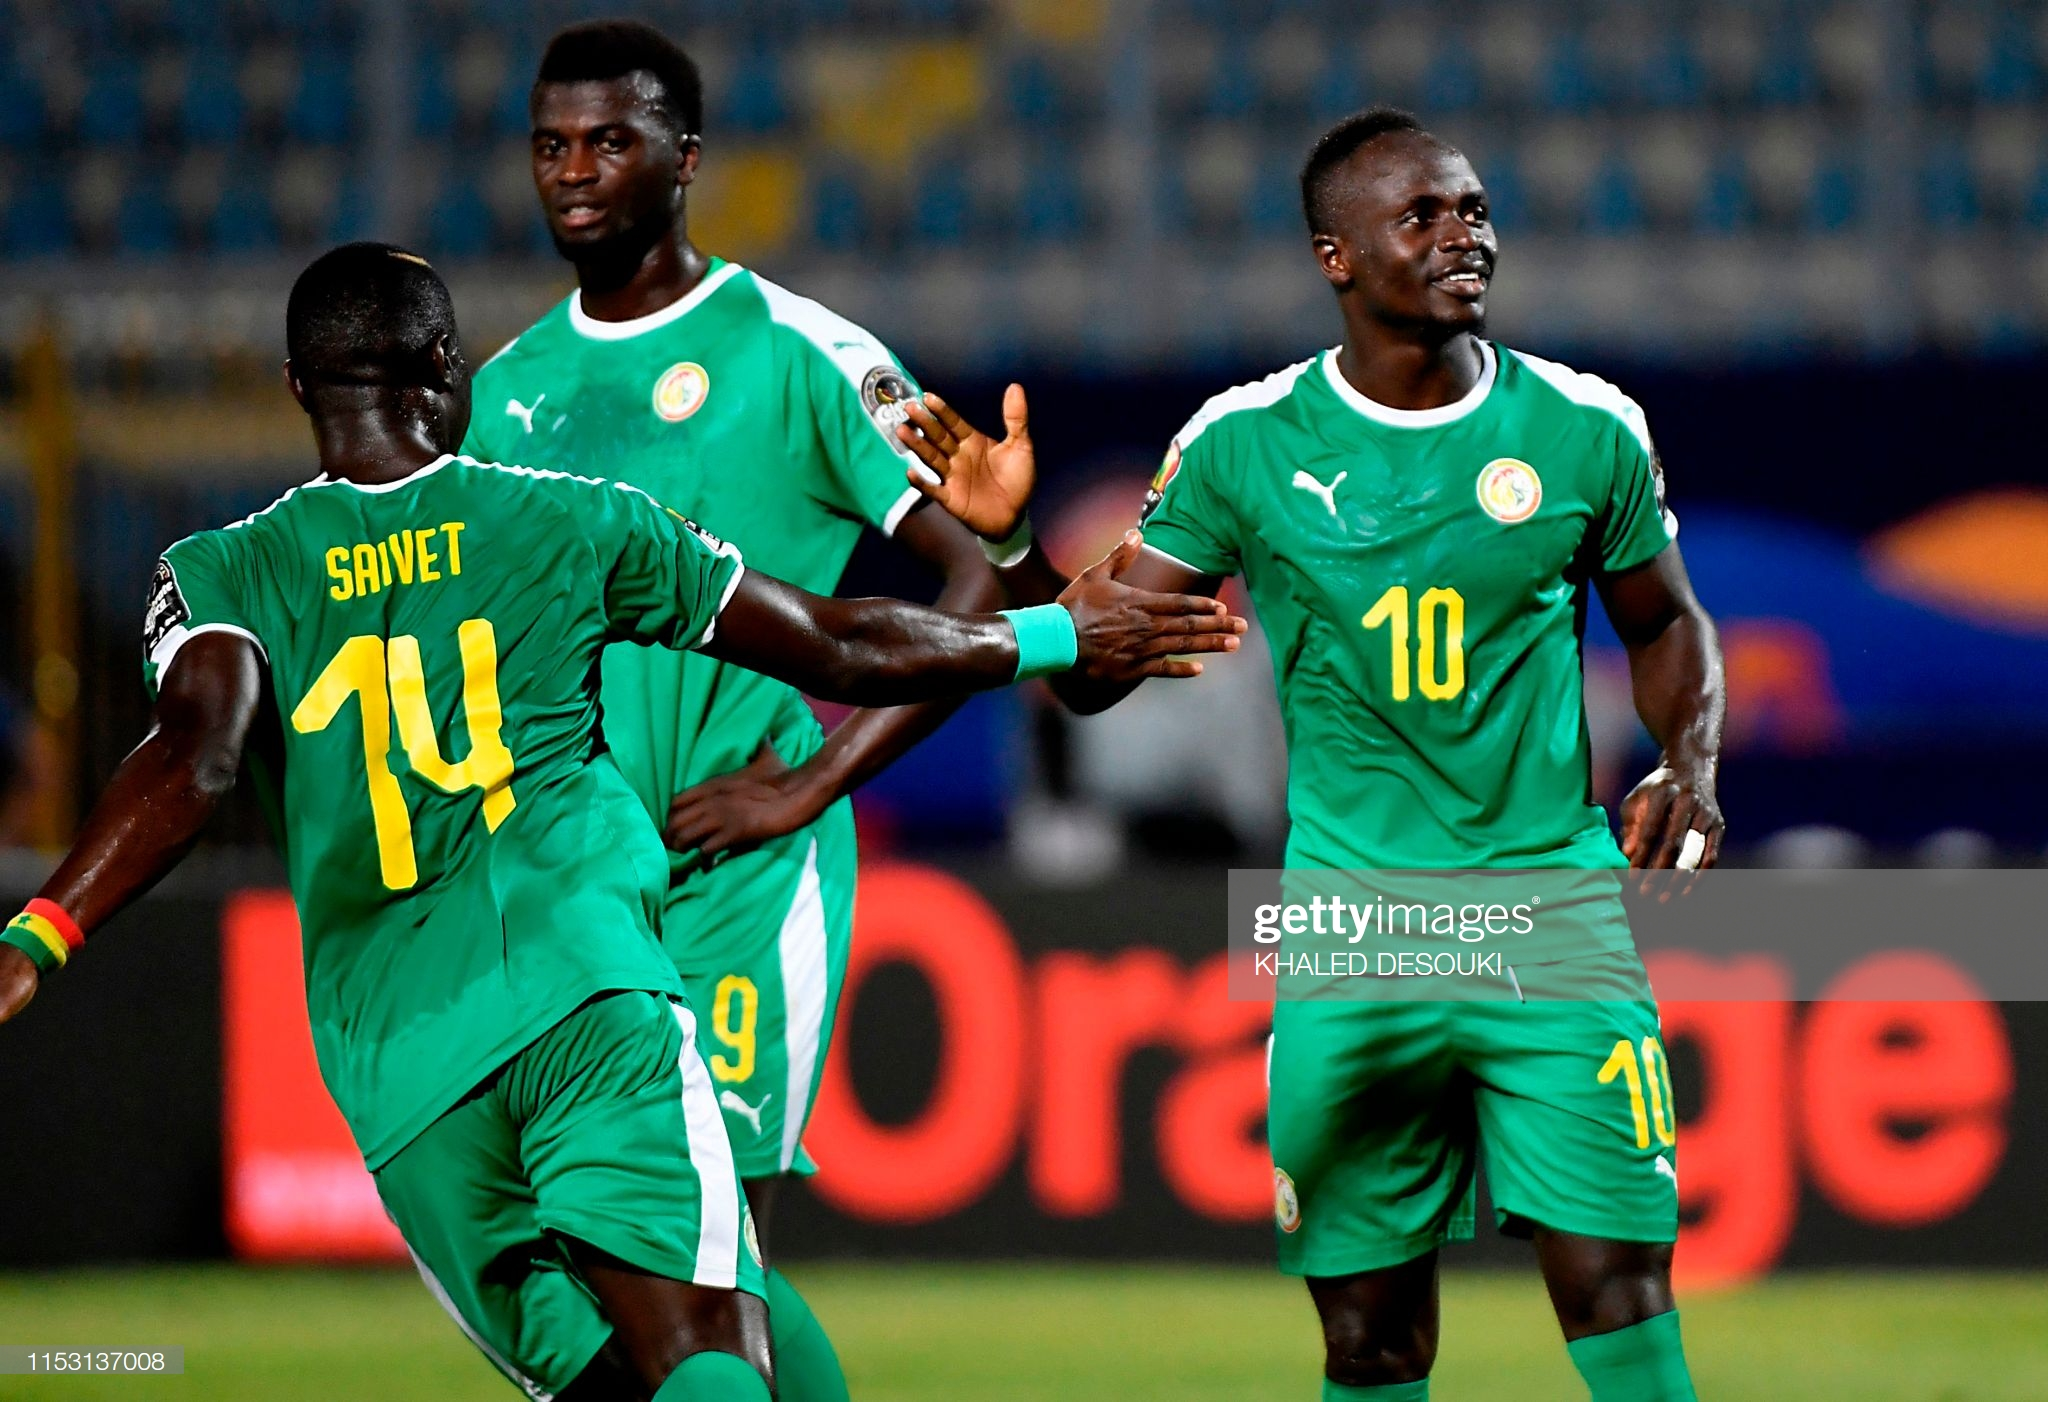 PHOTOS - SENEGAL / KENYA : Retrouvez en images les temps forts  du match